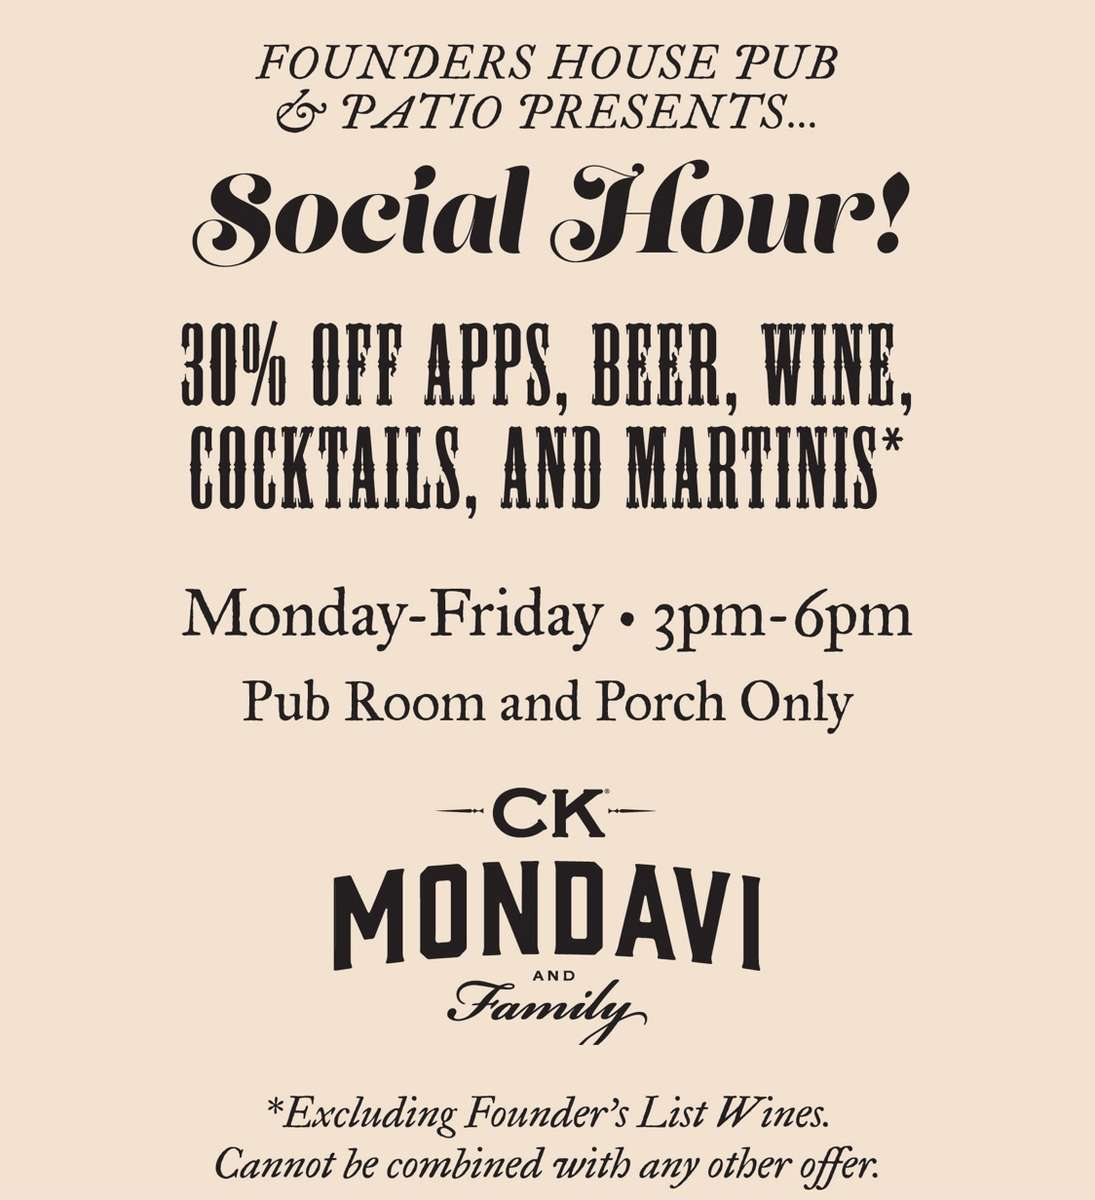 Join Us for Social hour Monday thru Friday from 3-6pm and get 30% off all appetizers, beer, wine and cocktails!